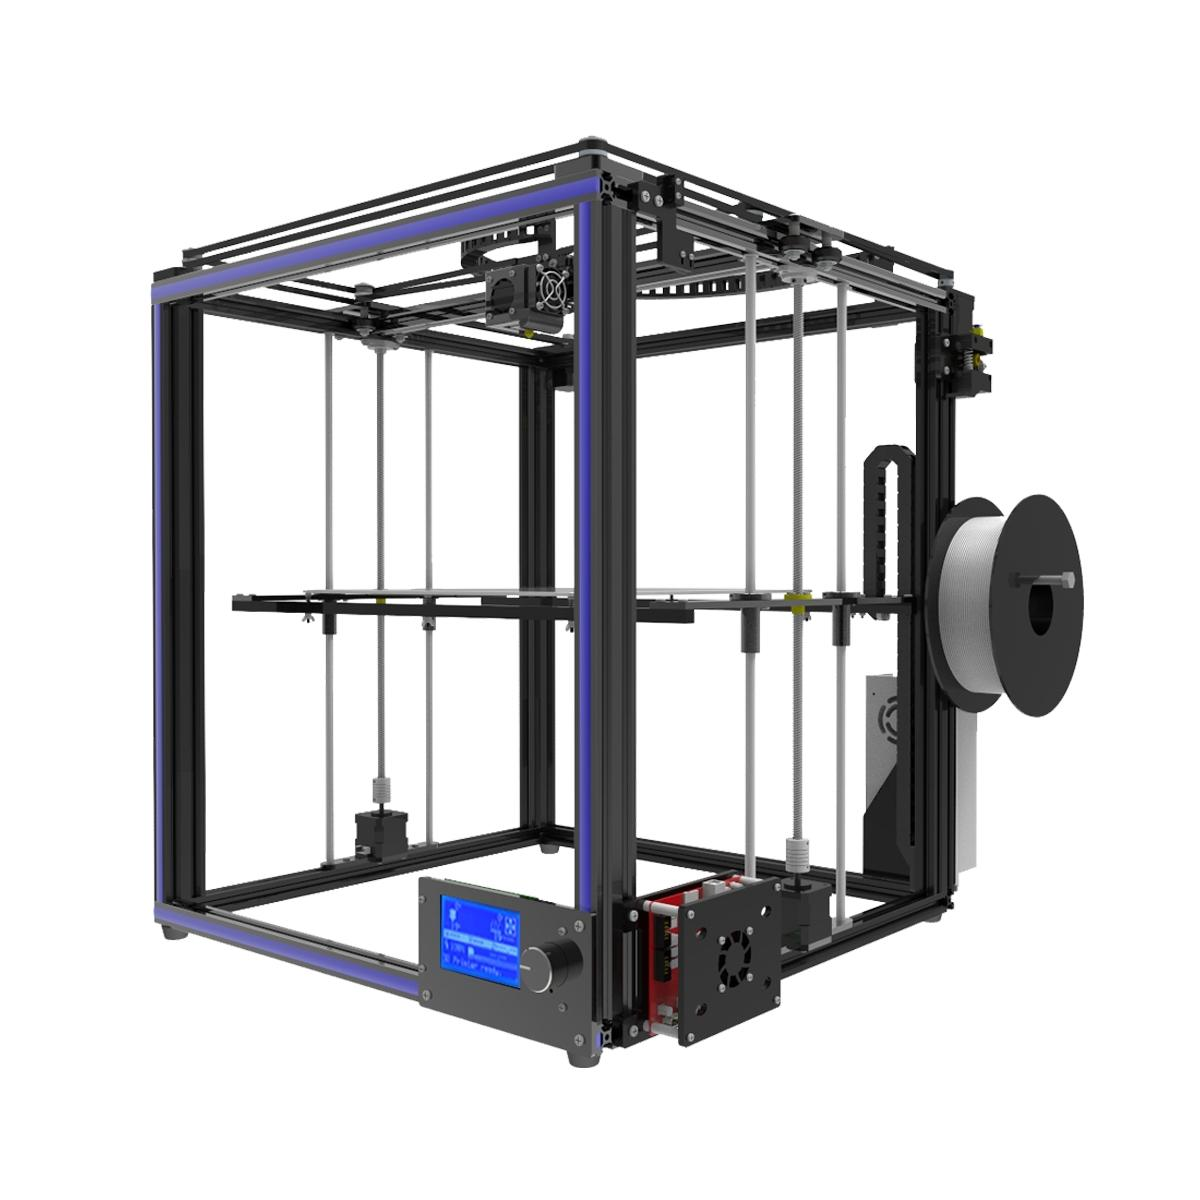 TRONXY® X5S DIY Aluminum 3D Printer Kit 330*330*400mm Large Printing Size With Dual Z-axis Rod 1.75mm 0.4mm Nozzle